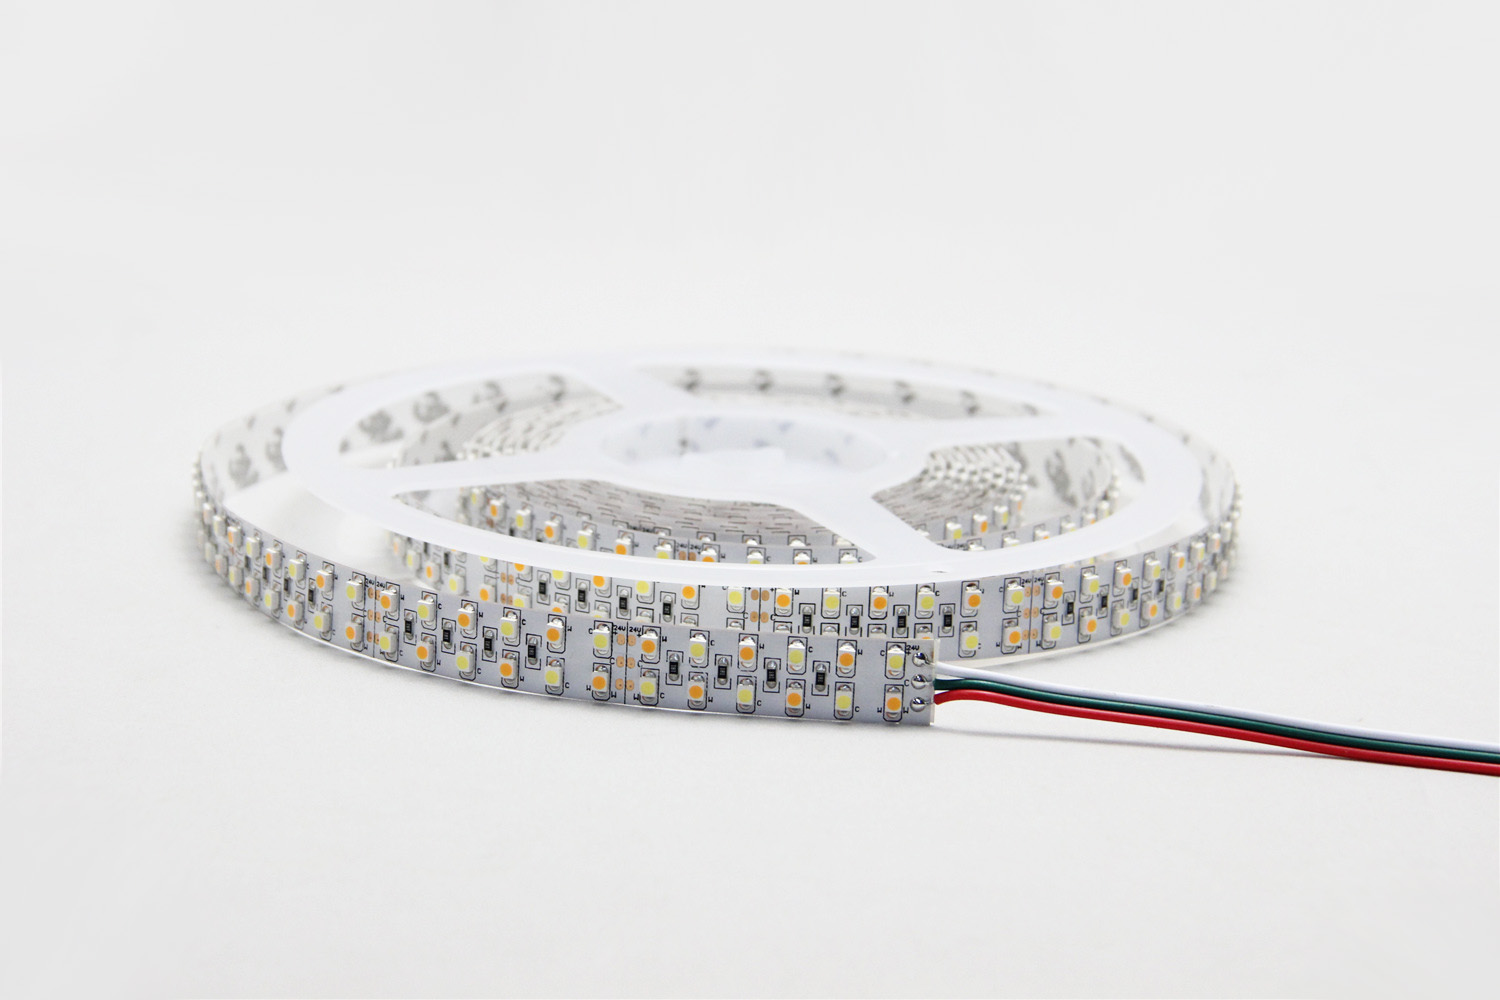 About 240 Led W Ww Double Color Led Strips